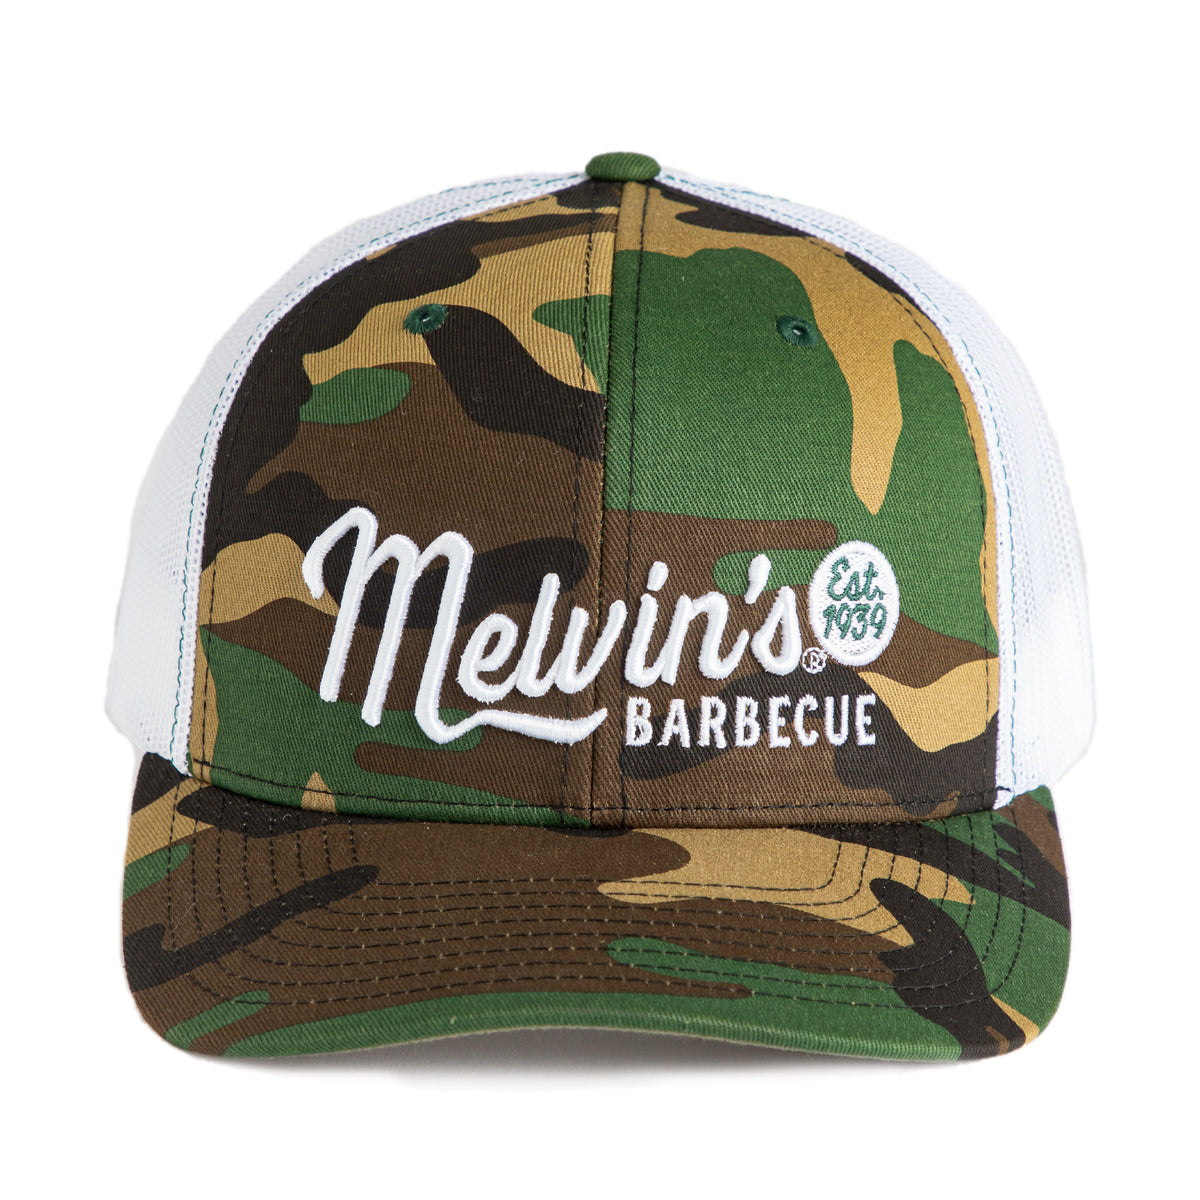 melvin's fashion camo richardson stitch hat